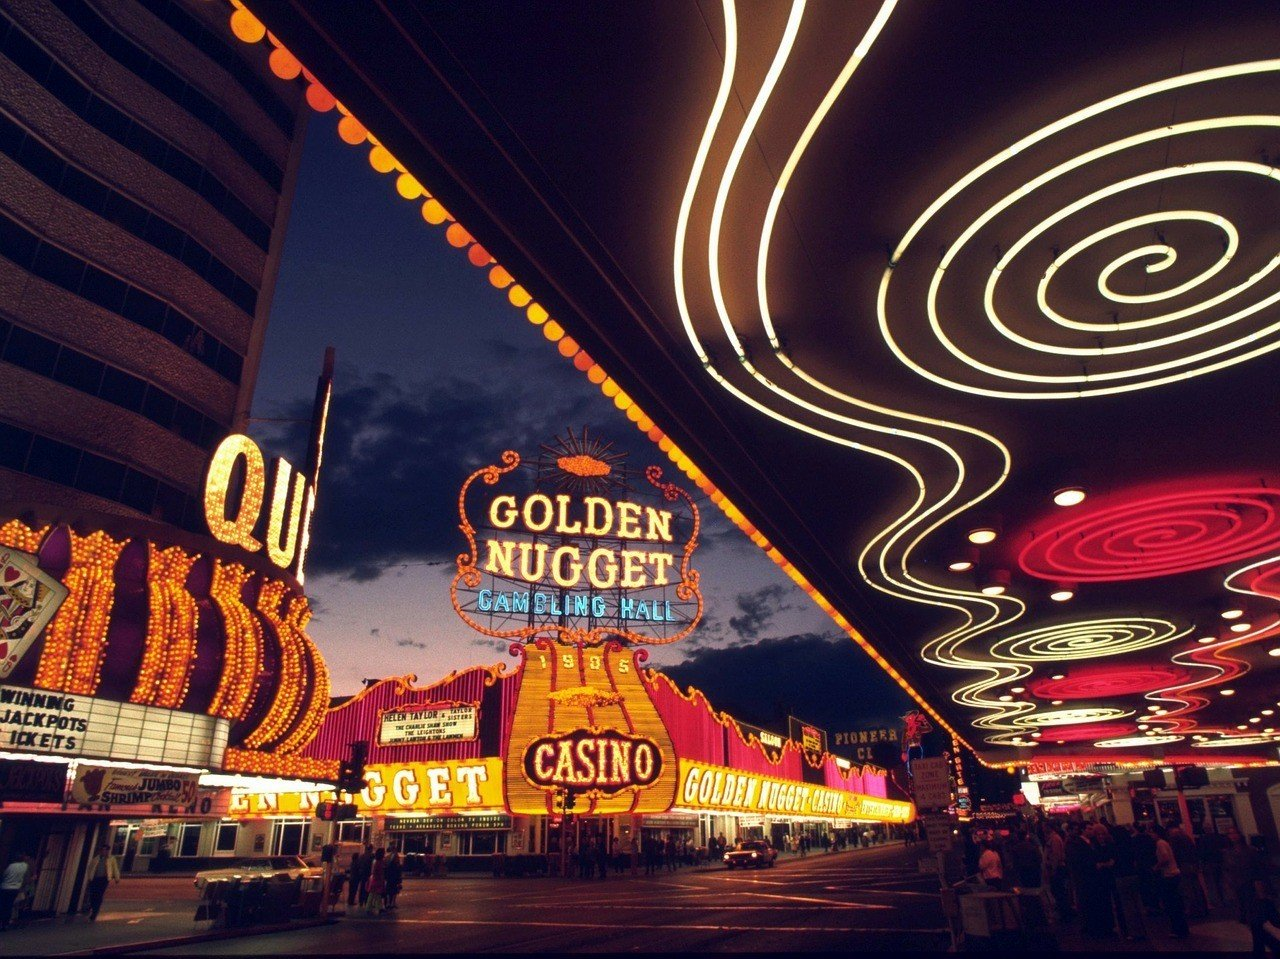 Las Vegas Casino - a fun place to visit in the USA for some